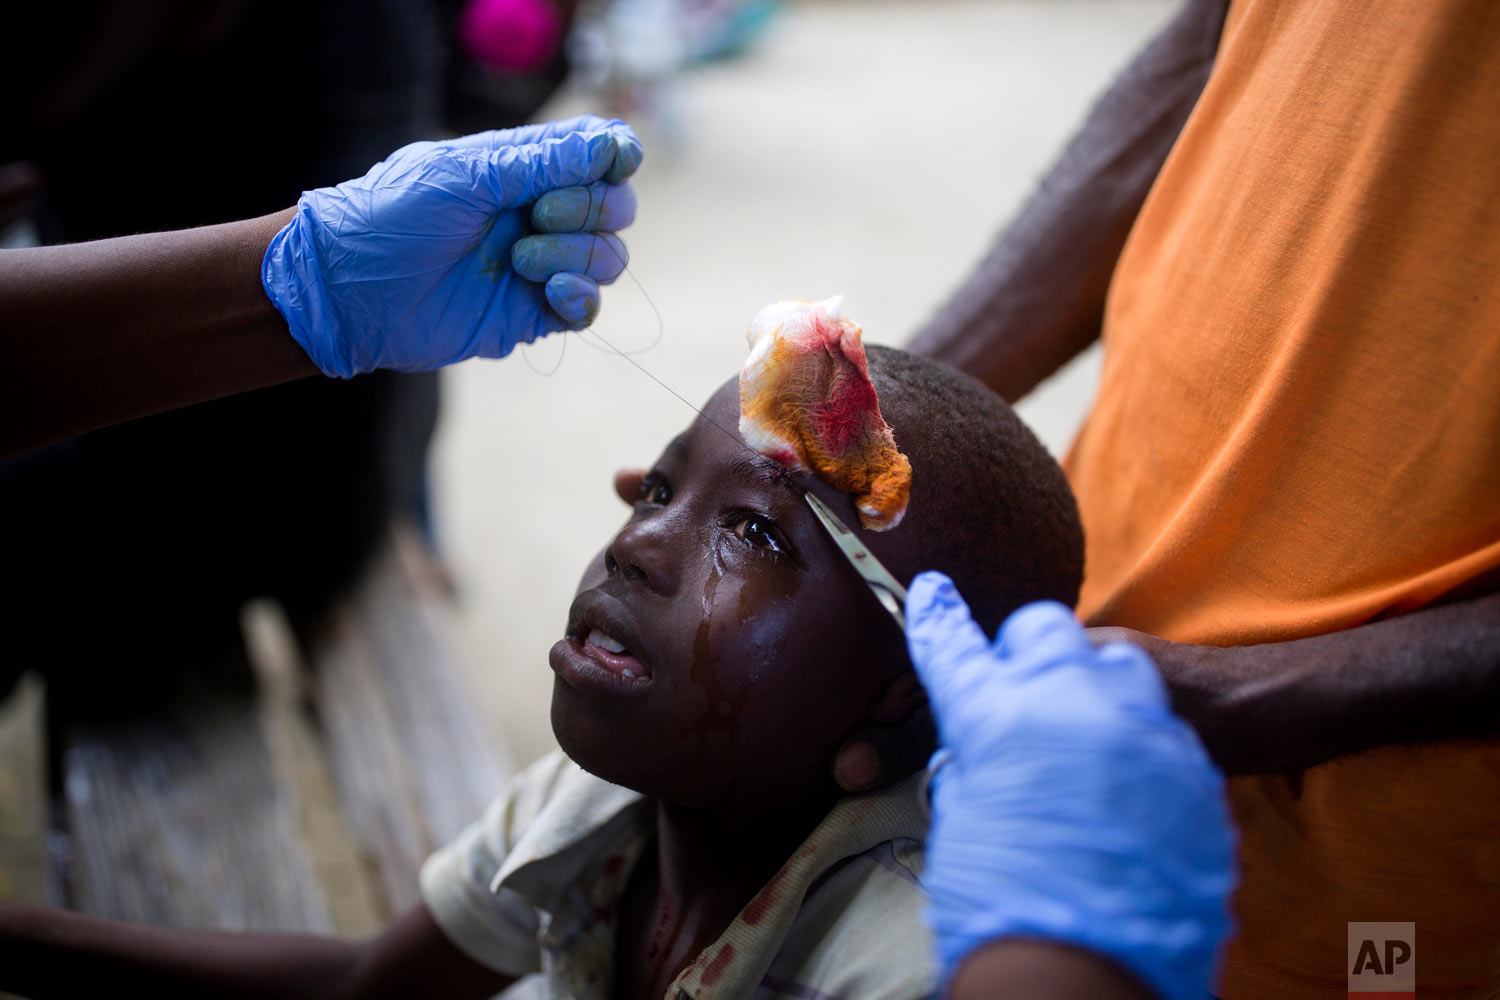 In this Oct. 7, 2018 photo, a boy injured by an aftershock gets stitches at the general hospital in Port-de-Paix, Haiti. A magnitude 5.2 aftershock that killed at least 12 people struck as survivors of the previous day's temblor were sifting through the rubble of their homes. (AP Photo/Dieu Nalio Chery)